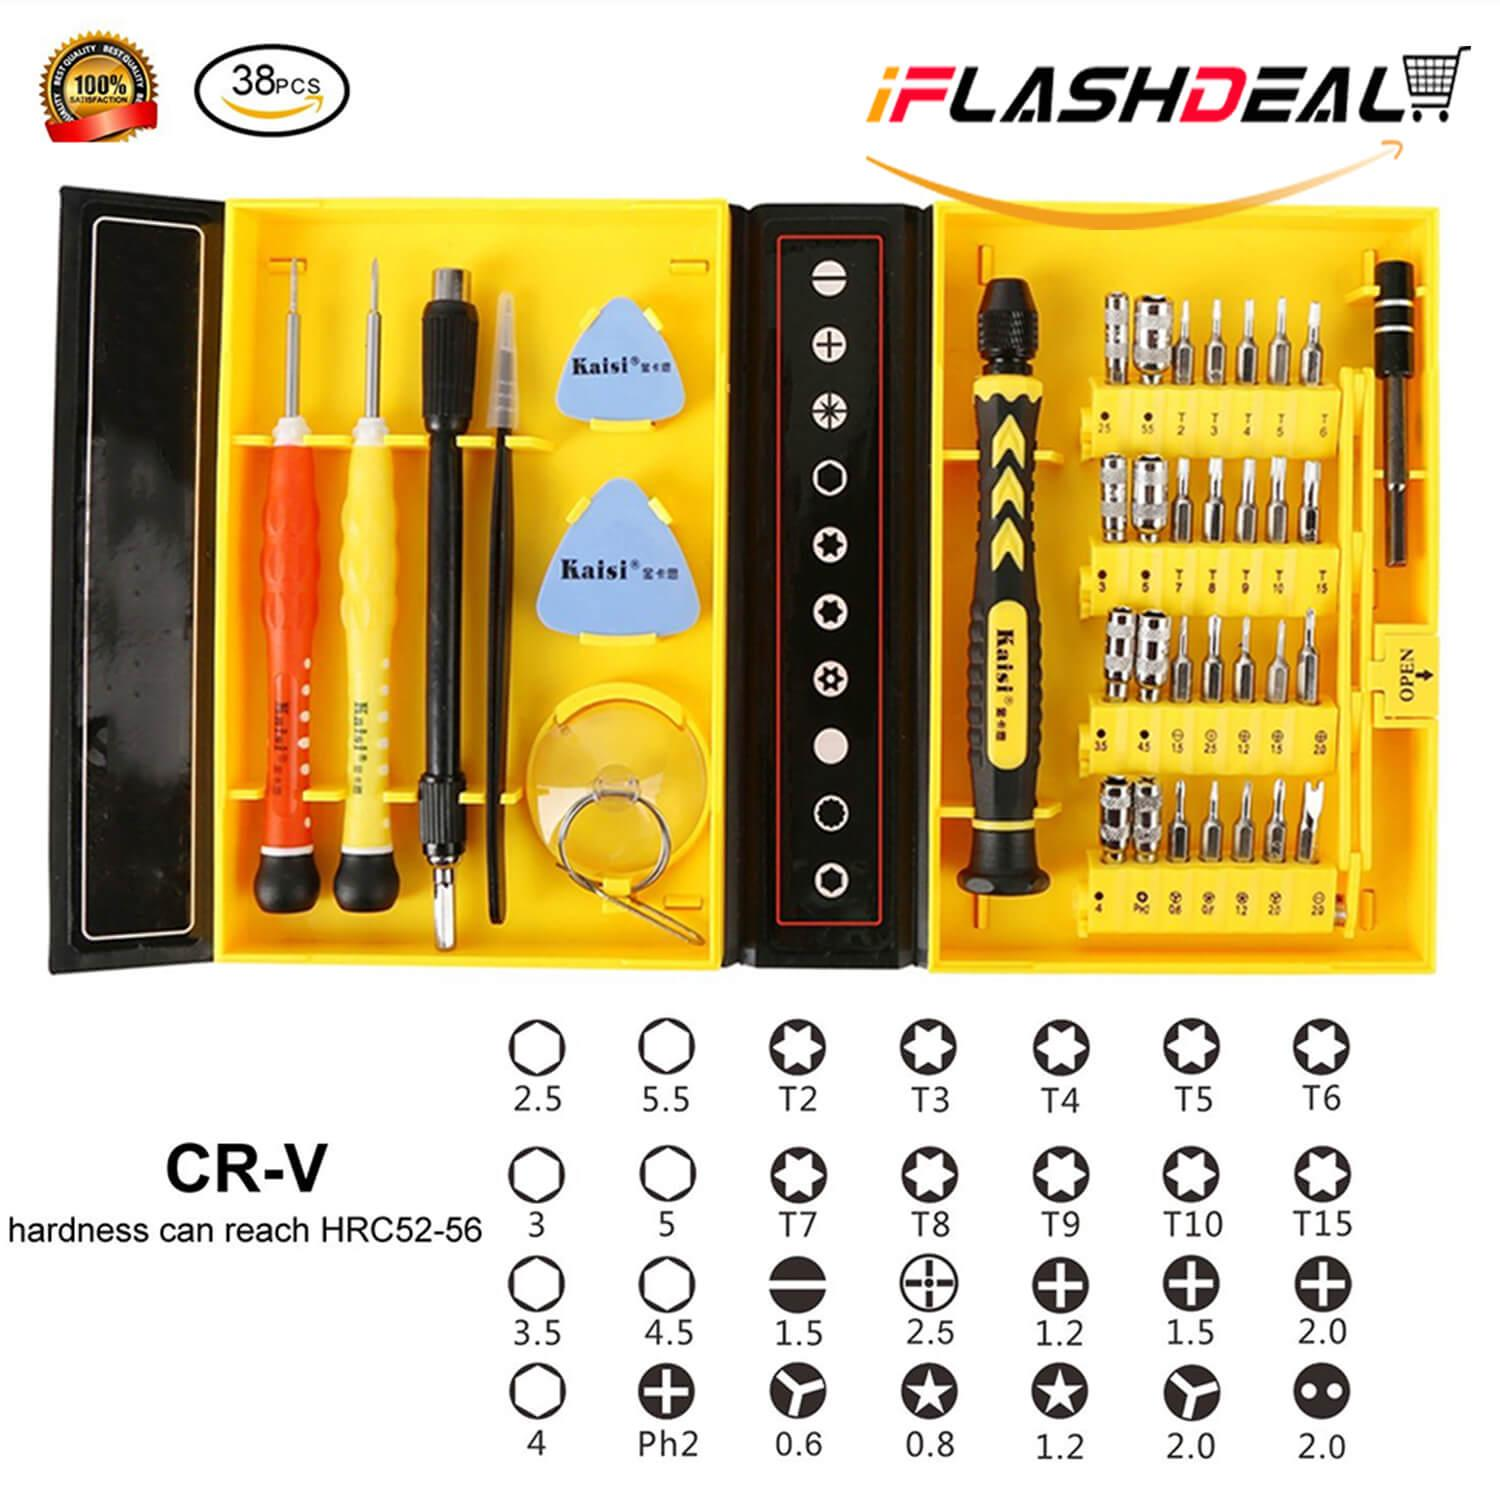 Iflashdeal 38 In 1 Precision Screwdriver Set Repair Tool Kit For Mobile Phone Computer By Iflashdeal.